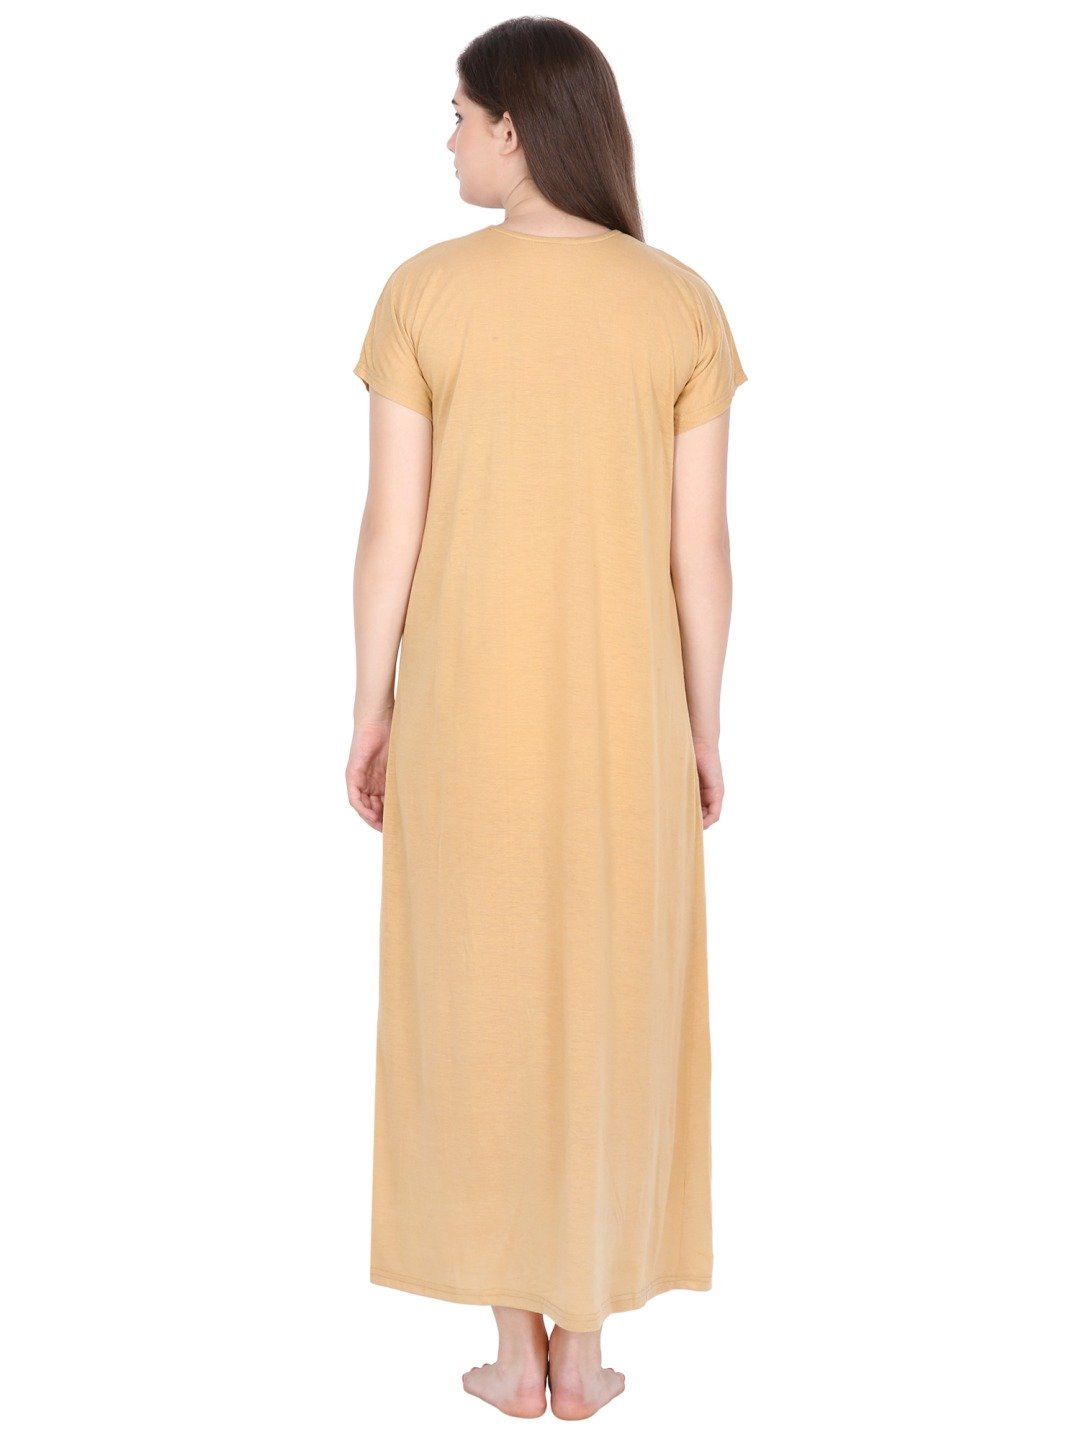 Klamotten Women's Viscose Nightdress L2Ym